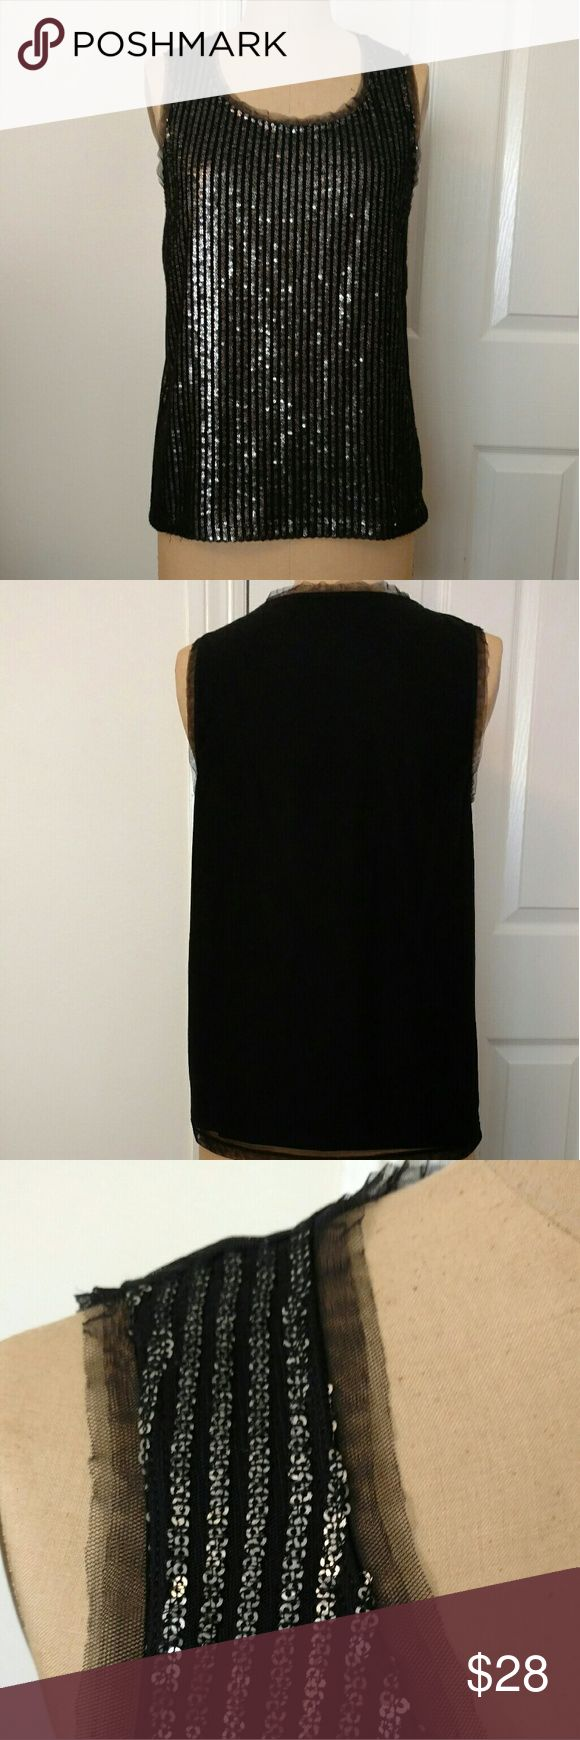 Chicos Sequin Shell Black sequin shell. The sequins are all stitched down- no snagging or loosing sequins! A very creative application. The edges are raw net. Chico's Tops Tank Tops